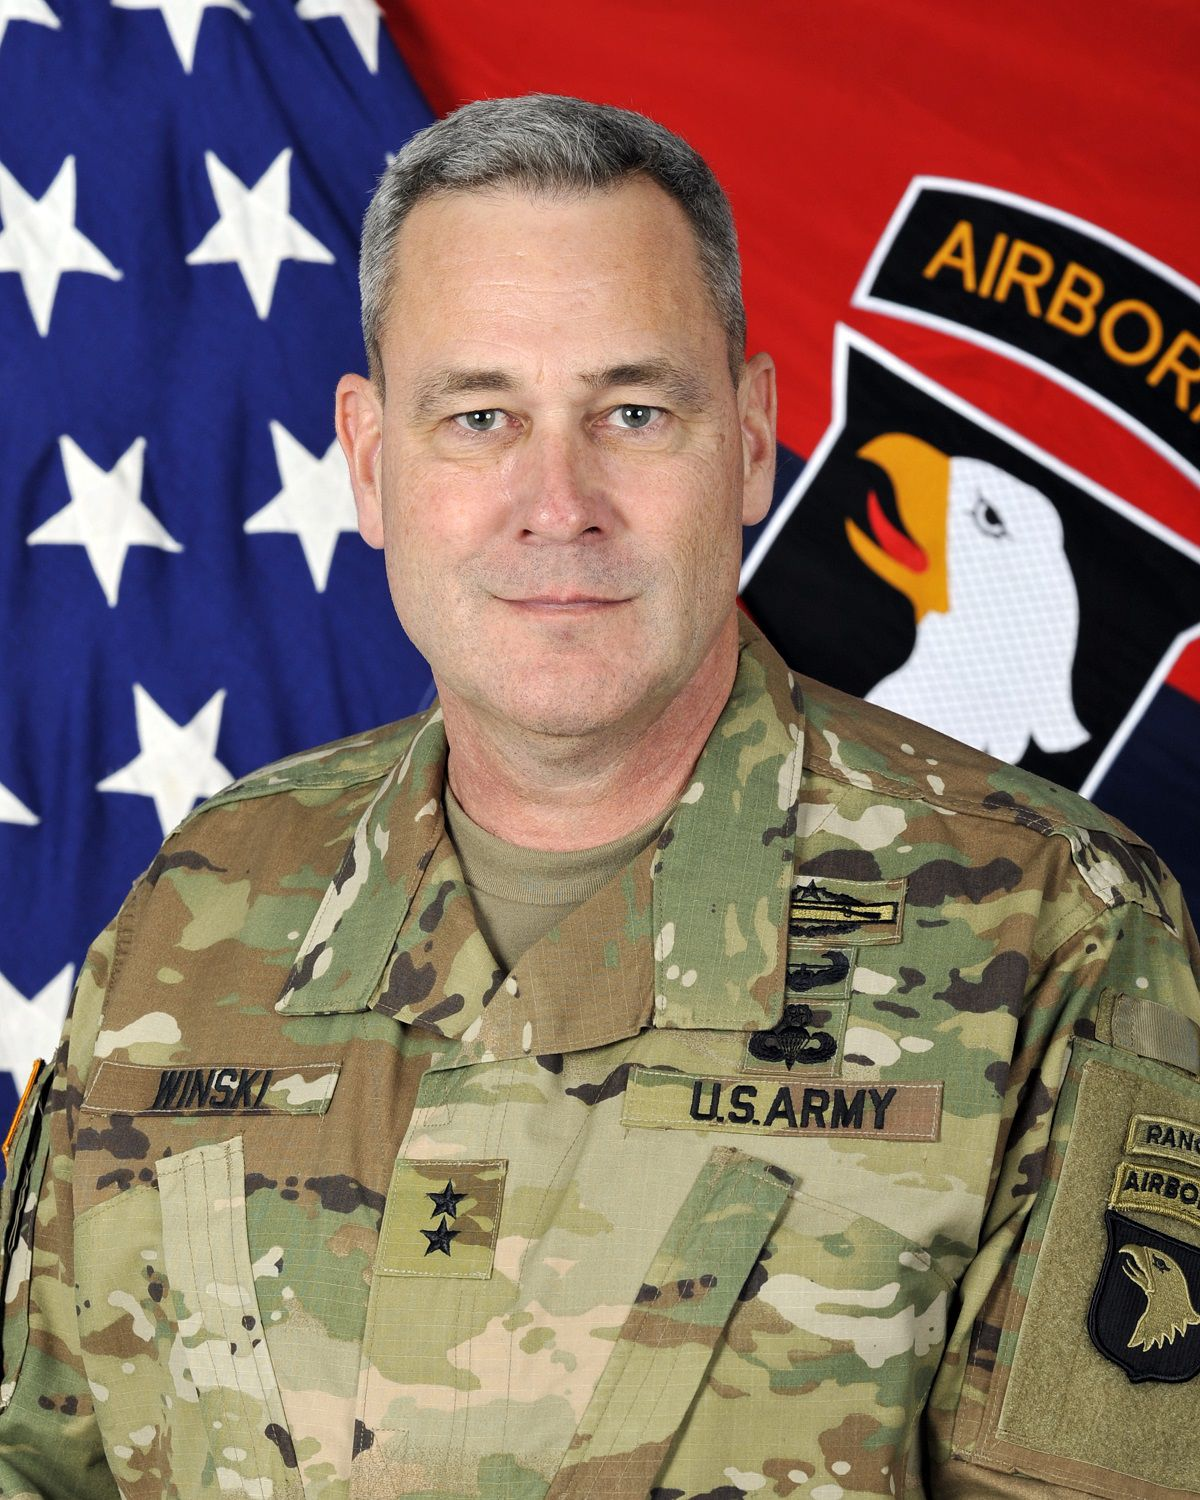 101st Airborne Division welcomes new commanding general